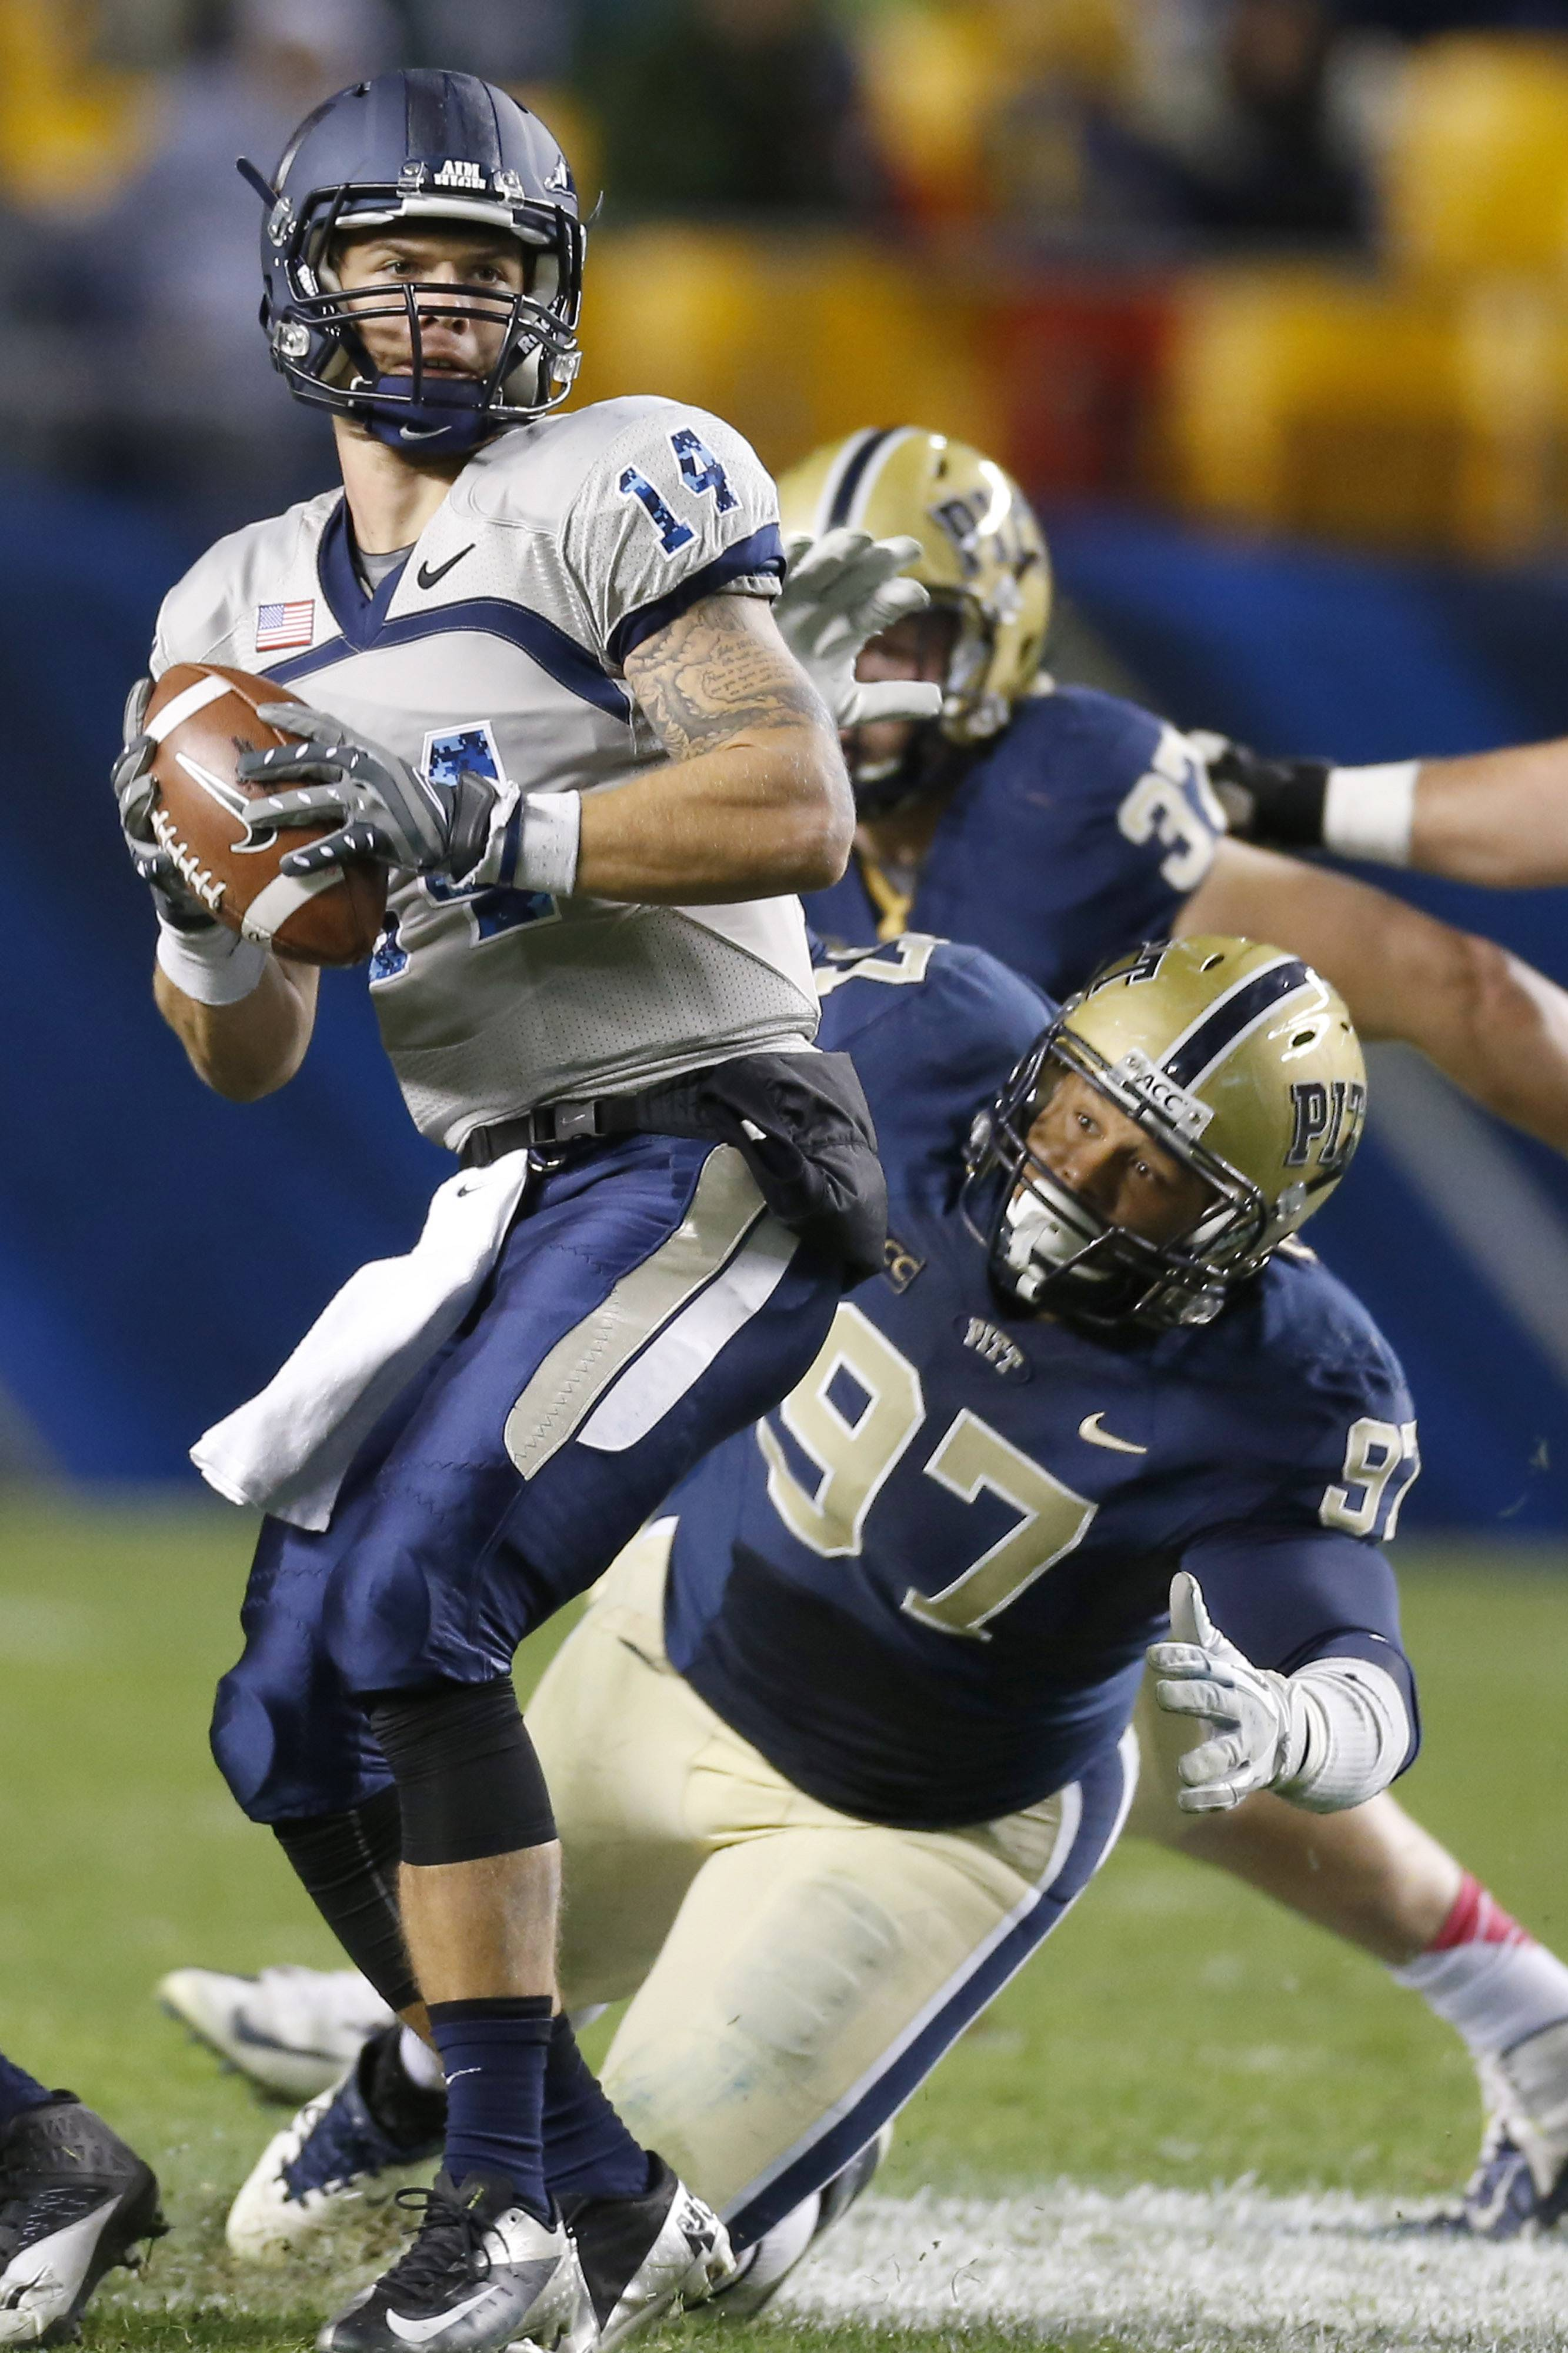 In this Oct. 19, 2013, file photo, Pittsburgh defensive lineman Aaron Donald (97) pressures Old Dominion quarterback Taylor Heinicke (14) during an NCAA football game in Pittsburgh. Donald, the most-decorated defensive player during the 2013 college football season with four major awards, could be the Panthers' highest draft pick since wideout Larry Fitzgerald was taken third overall by the Arizona Cardinals in 2004.